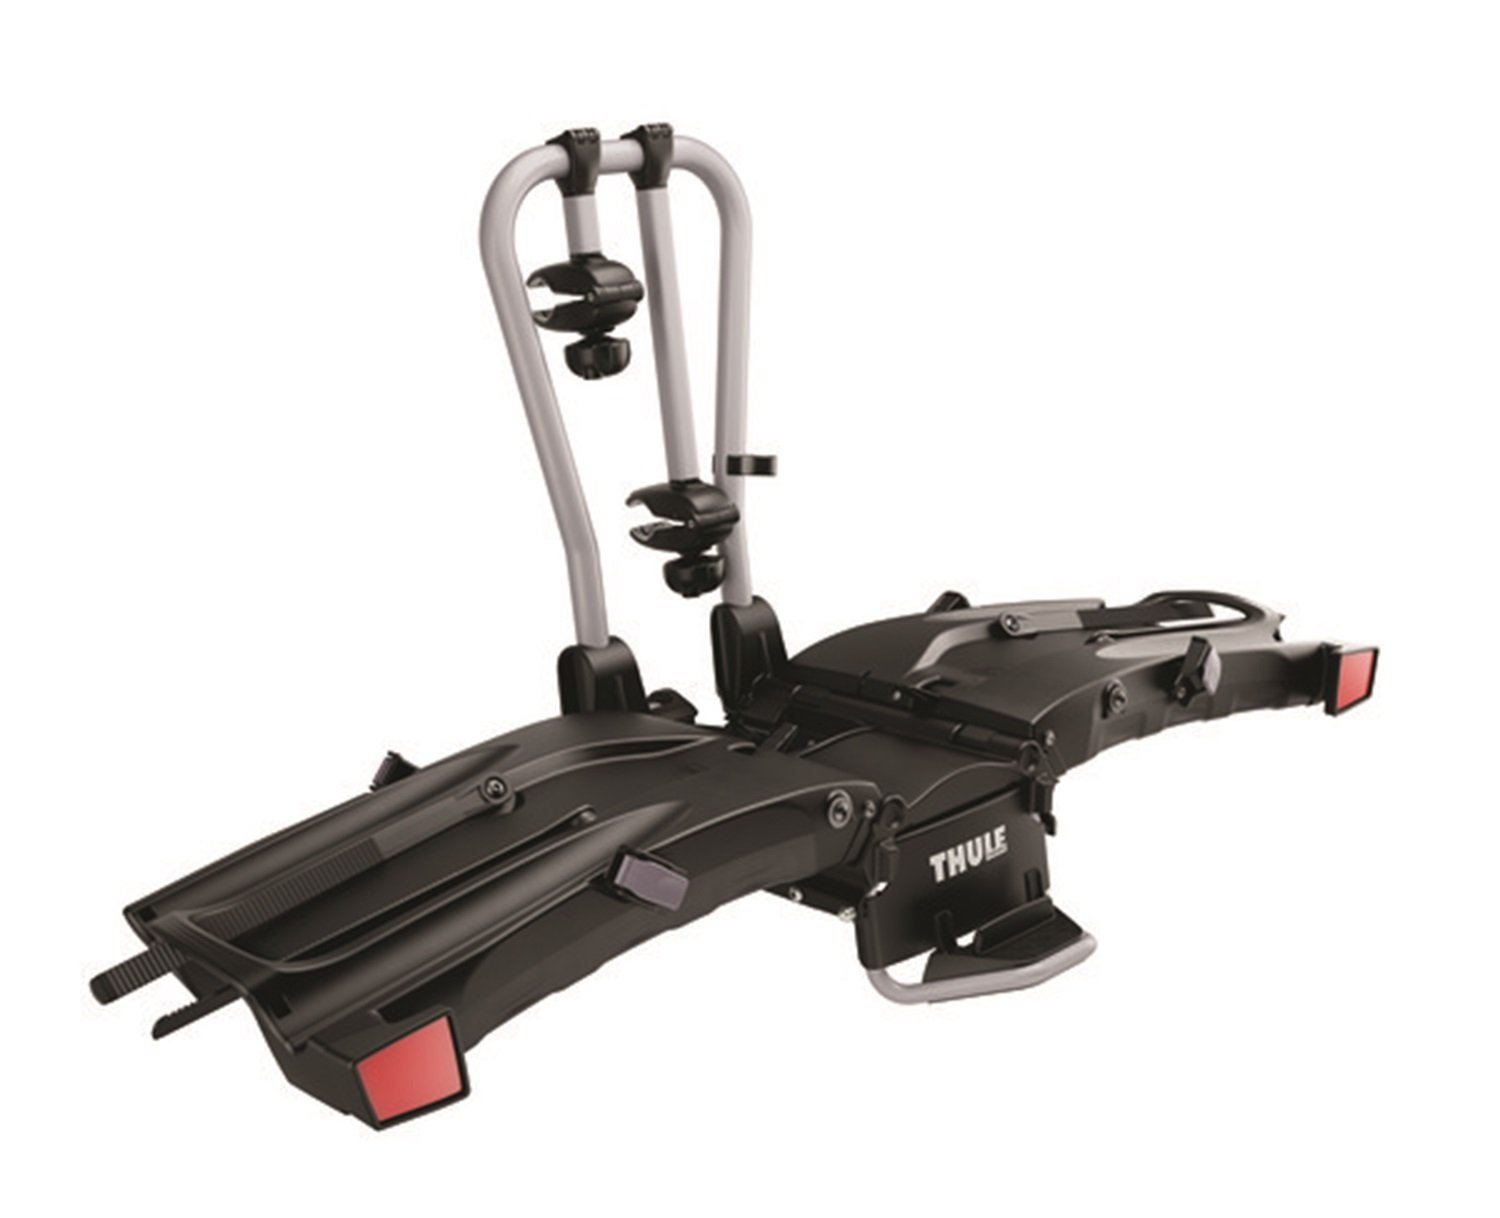 alberta htm thule xt rack hitch zoom product calgary pro loading bike